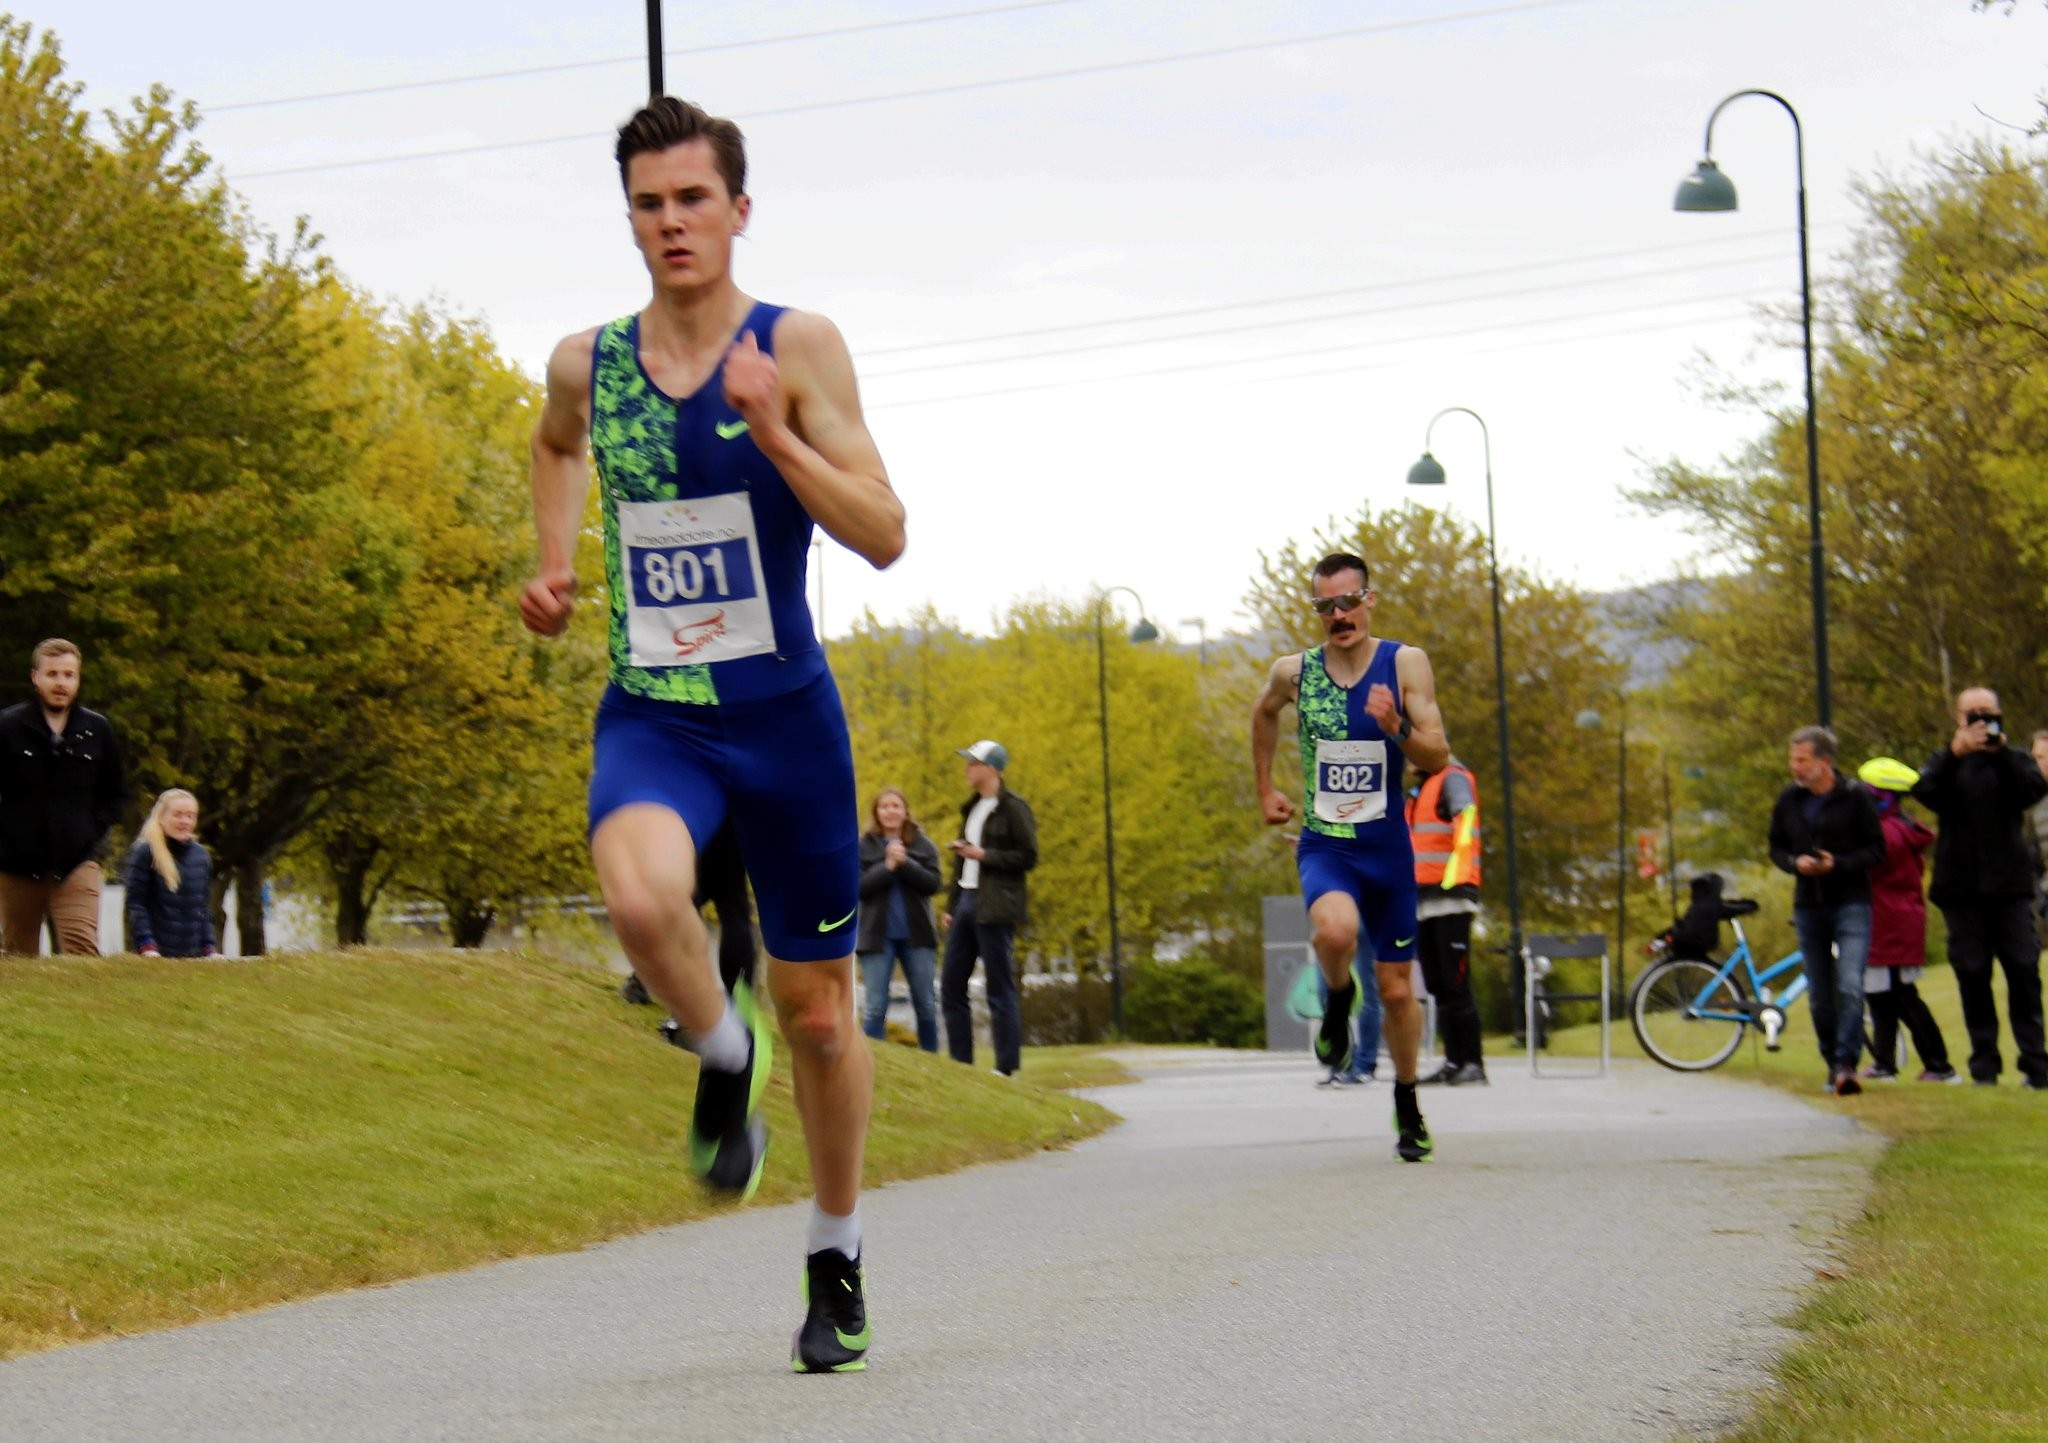 Jakob Ingebrigtsen breaks Norwegian 5km record in Stavanger at one of the first races in the world since March 8